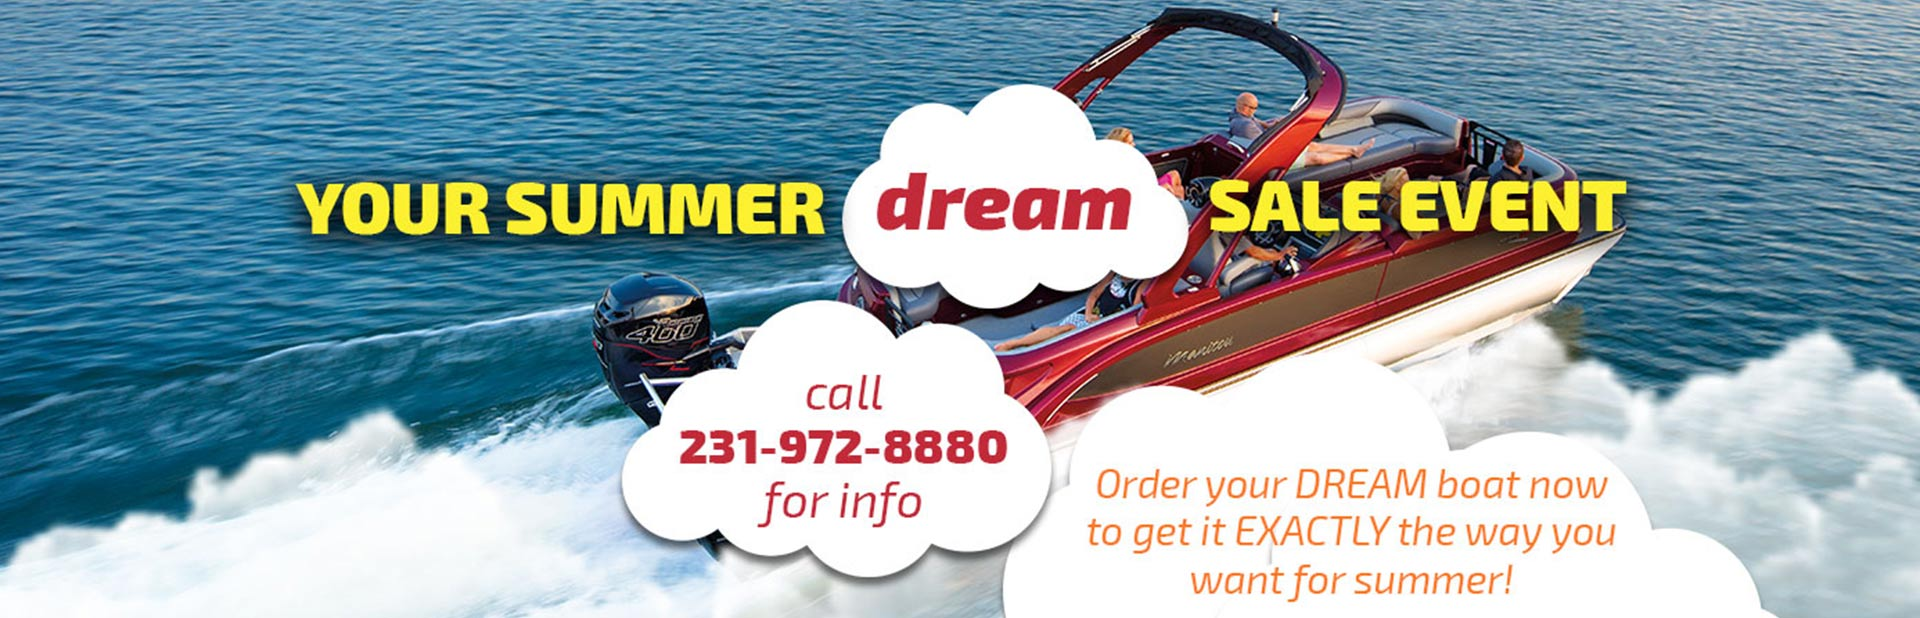 Your Summer Dream Sale Event: Order your DREAM boat now to get it EXACTLY the way you want for summer!